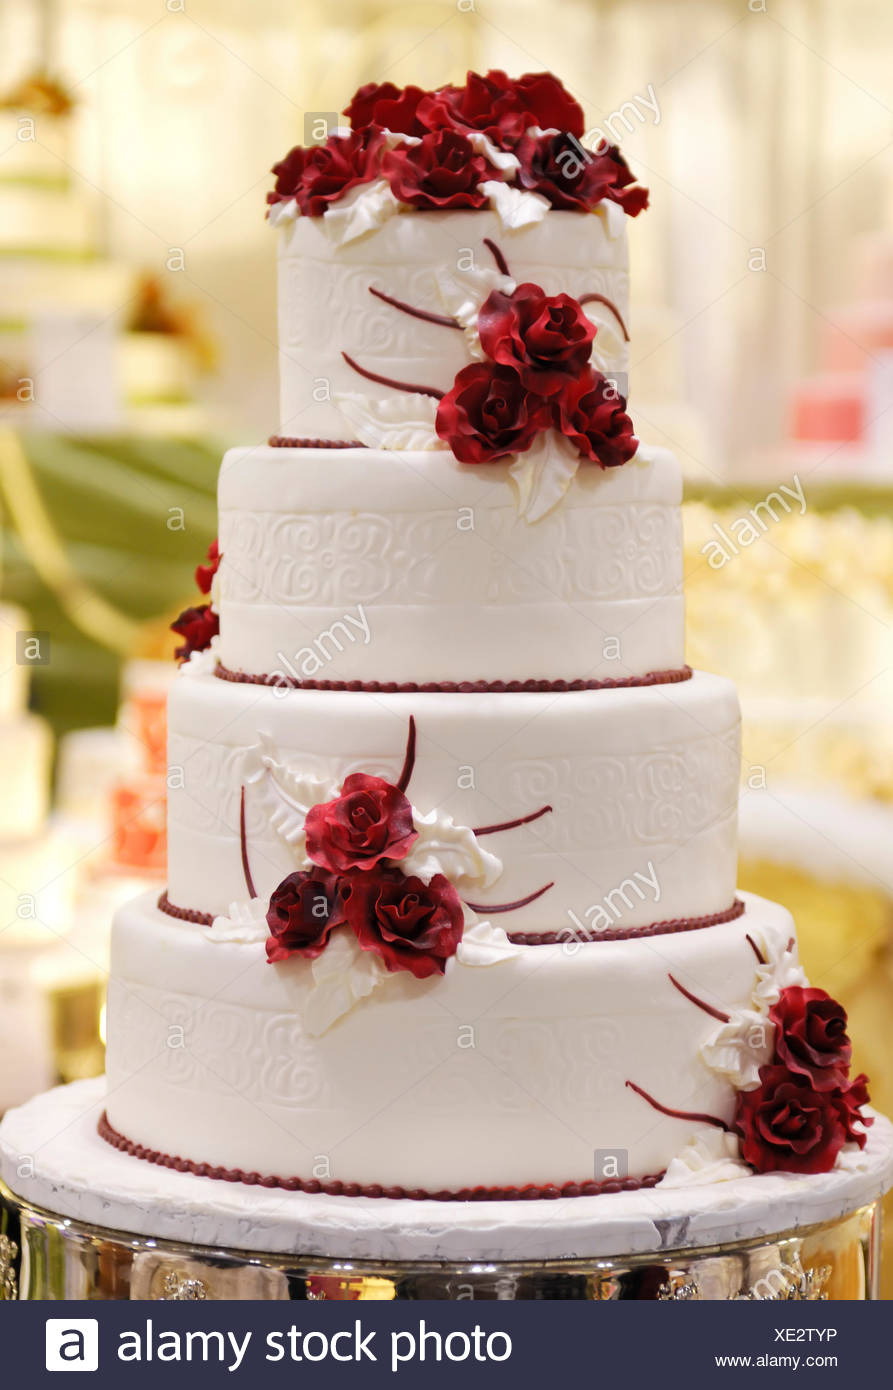 Tiered Wedding Cake Decorated With Red Roses Stock Photo 284034570